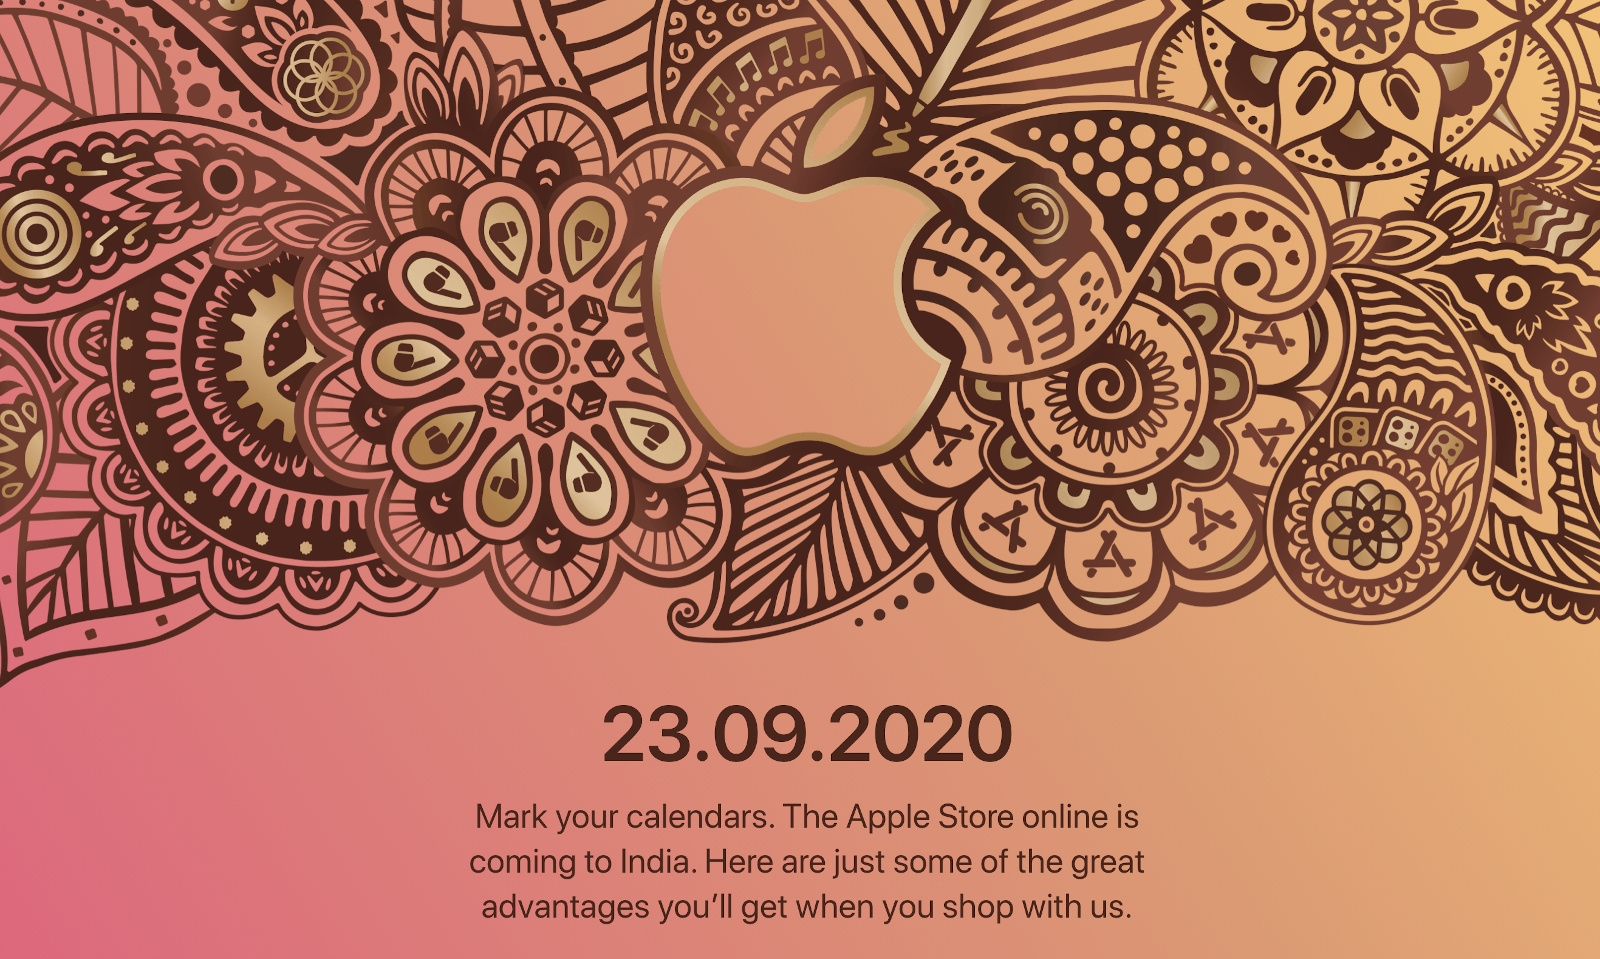 Apple's online store is opening in India on September 23rd | DeviceDaily.com